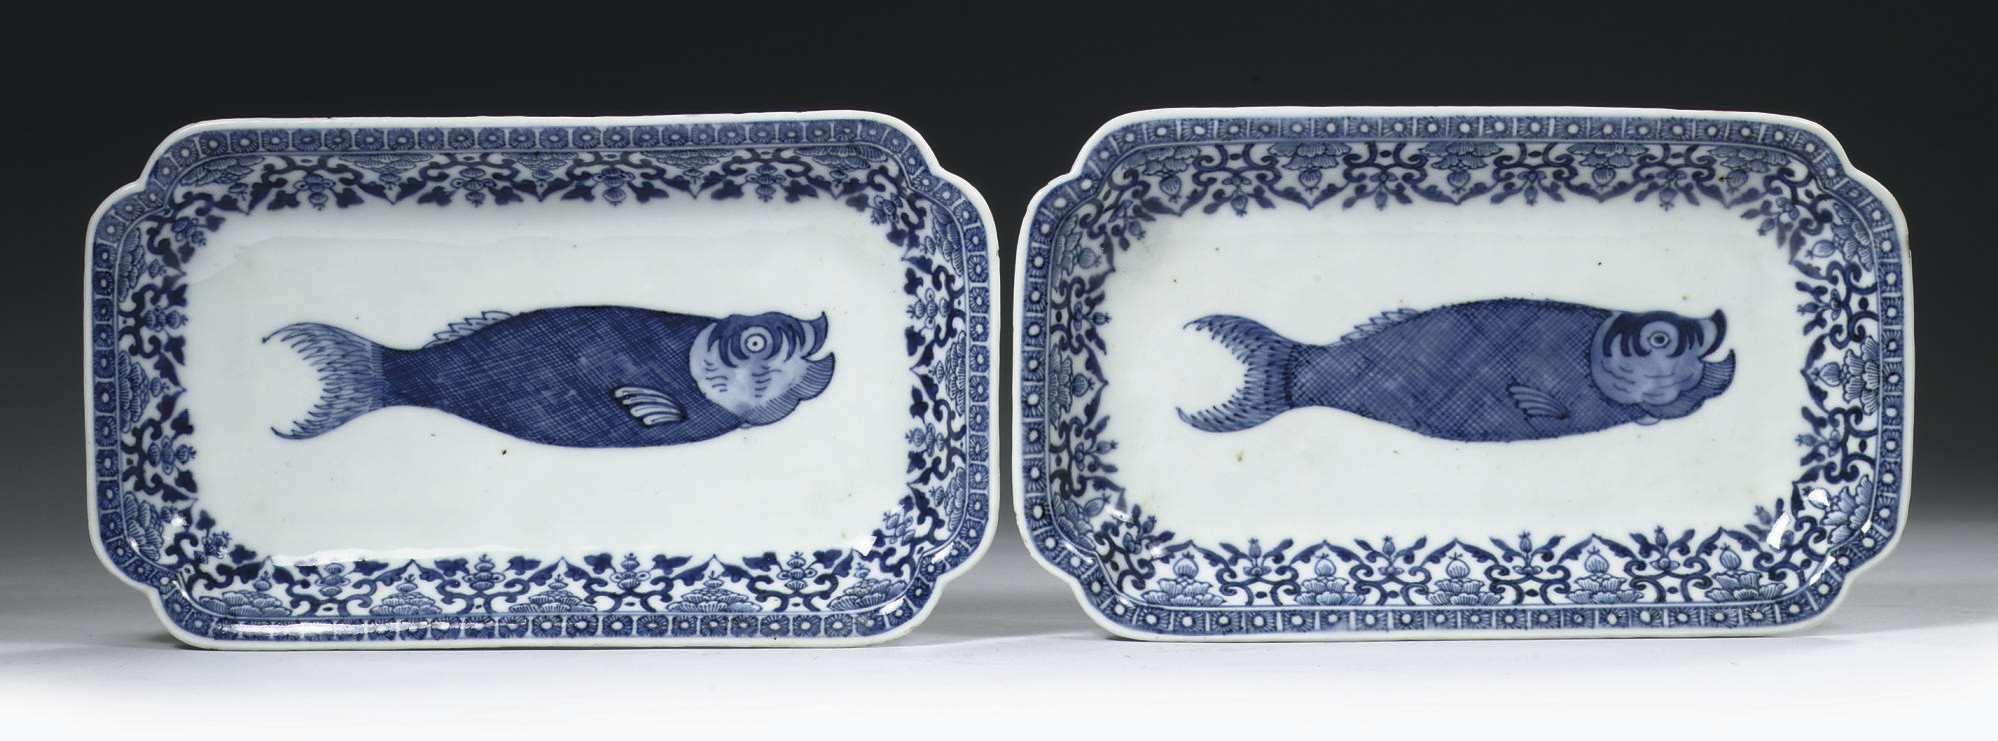 A pair of blue and white 'herr